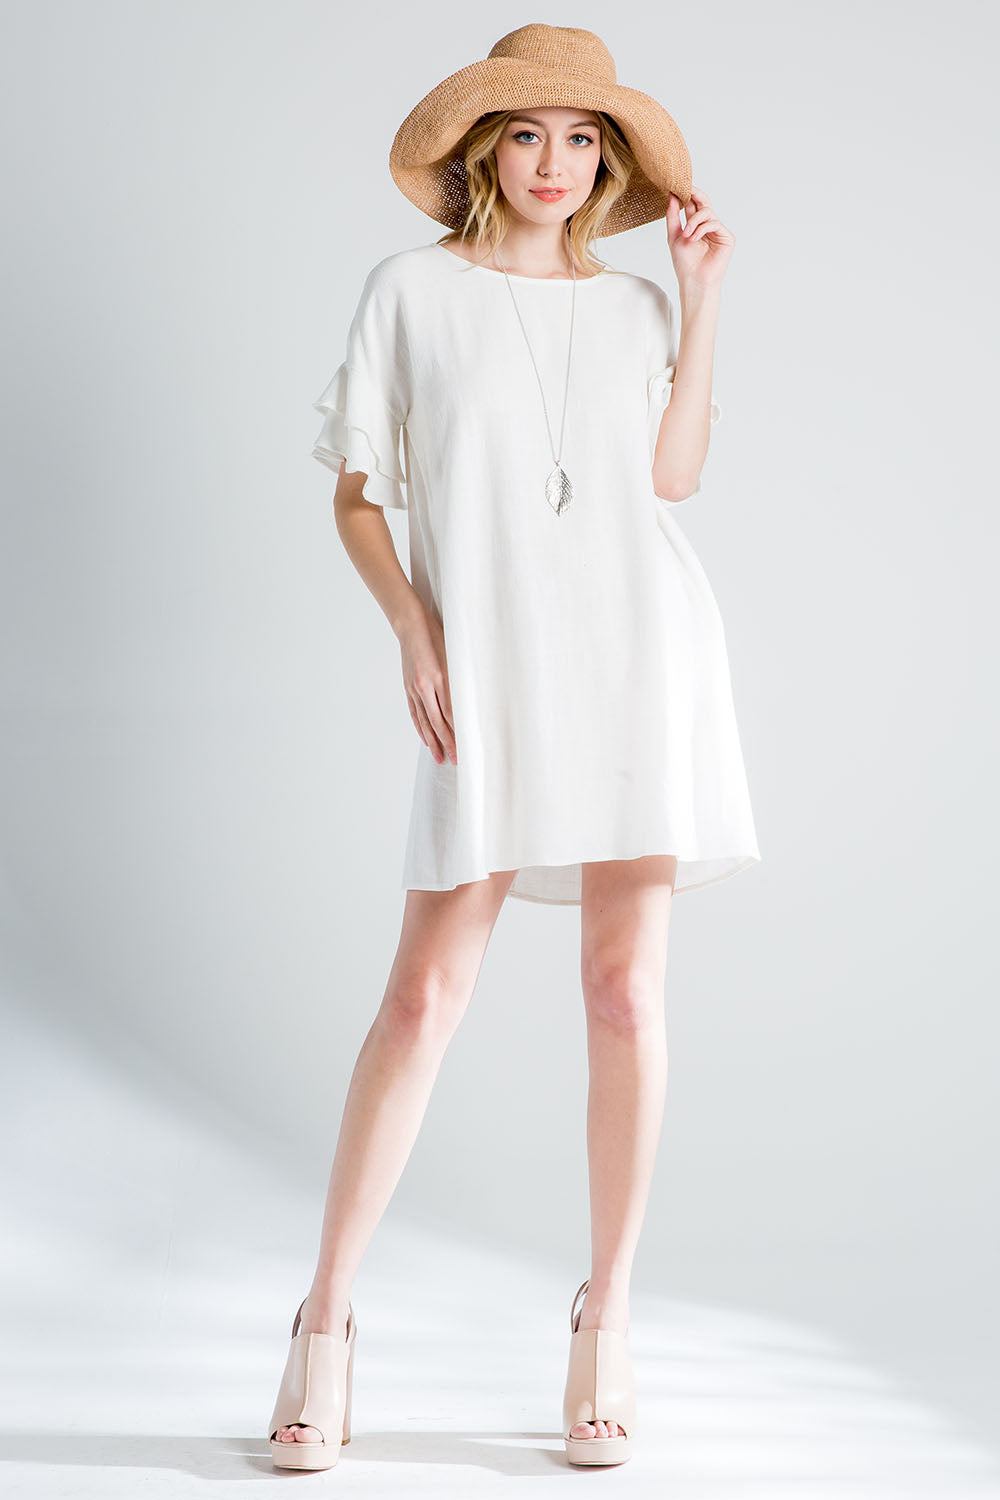 LINEN RUFFLED SLEEVE SHIFT DRESS WITH POCKET-OFF WHITE